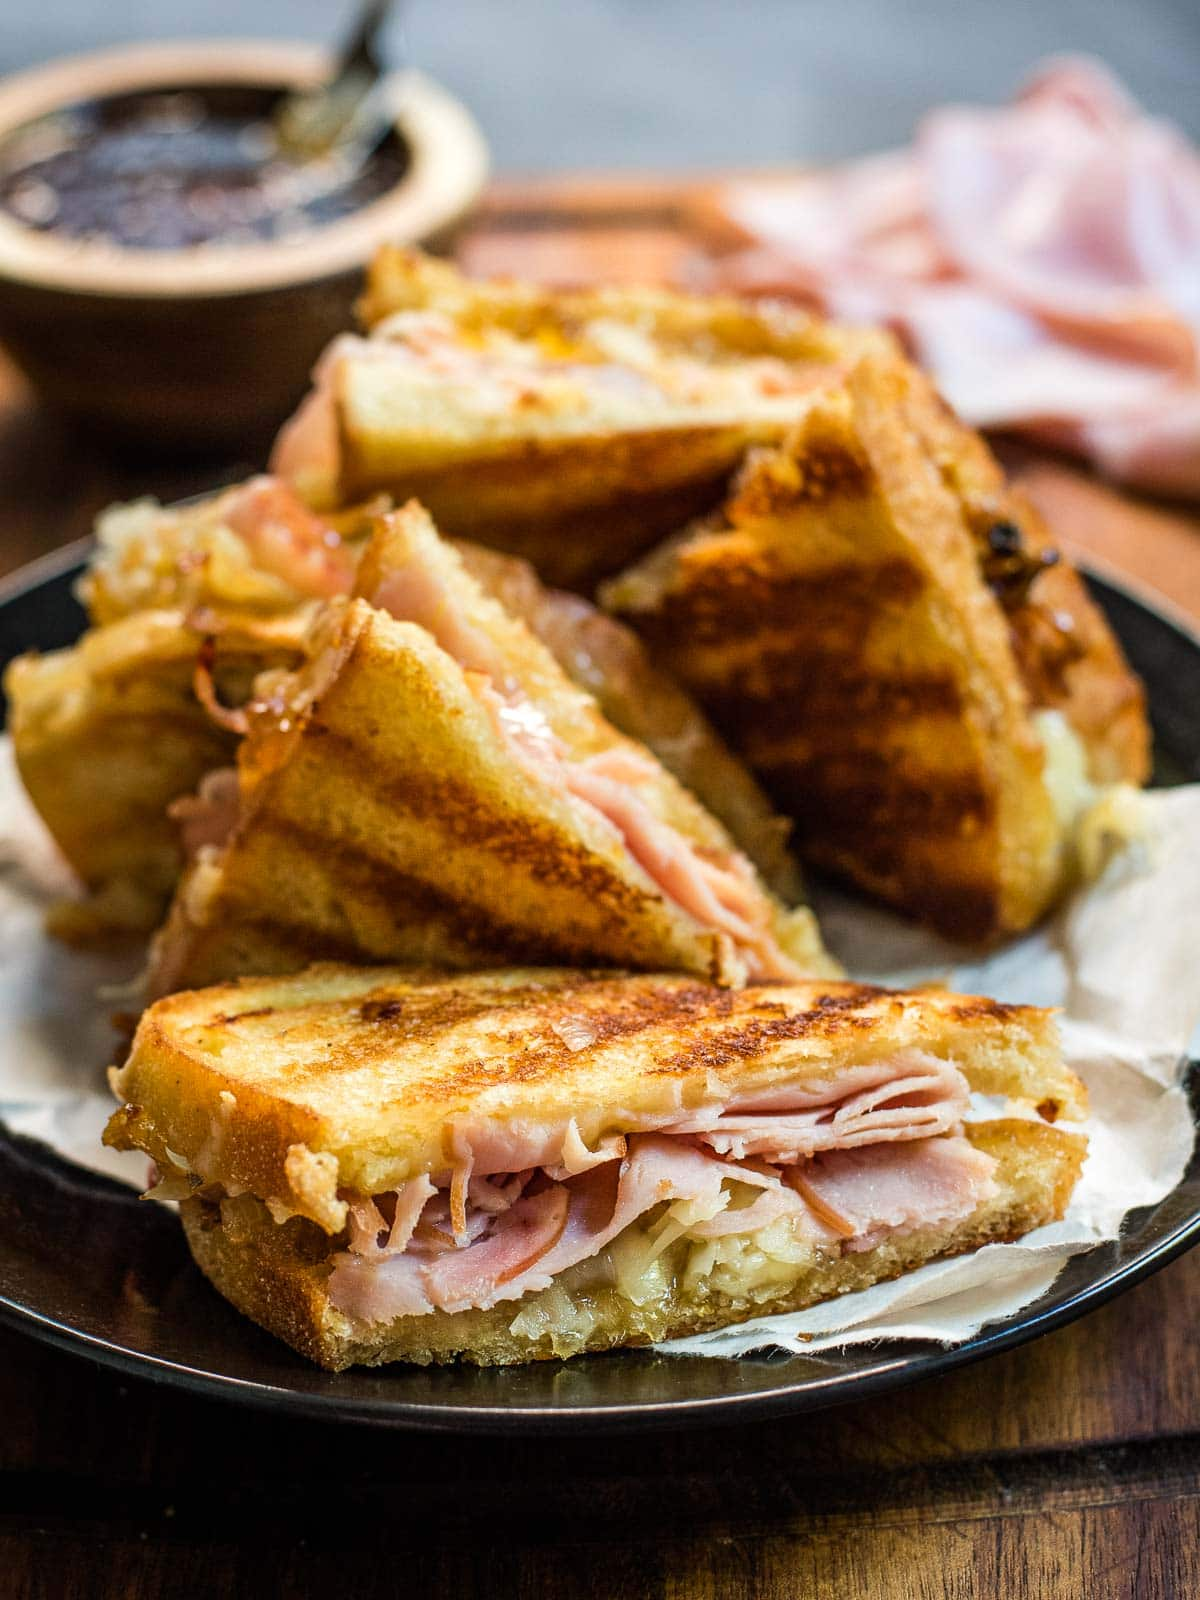 Side view of a Gruyere grilled cheese with ham slices on a black plate.